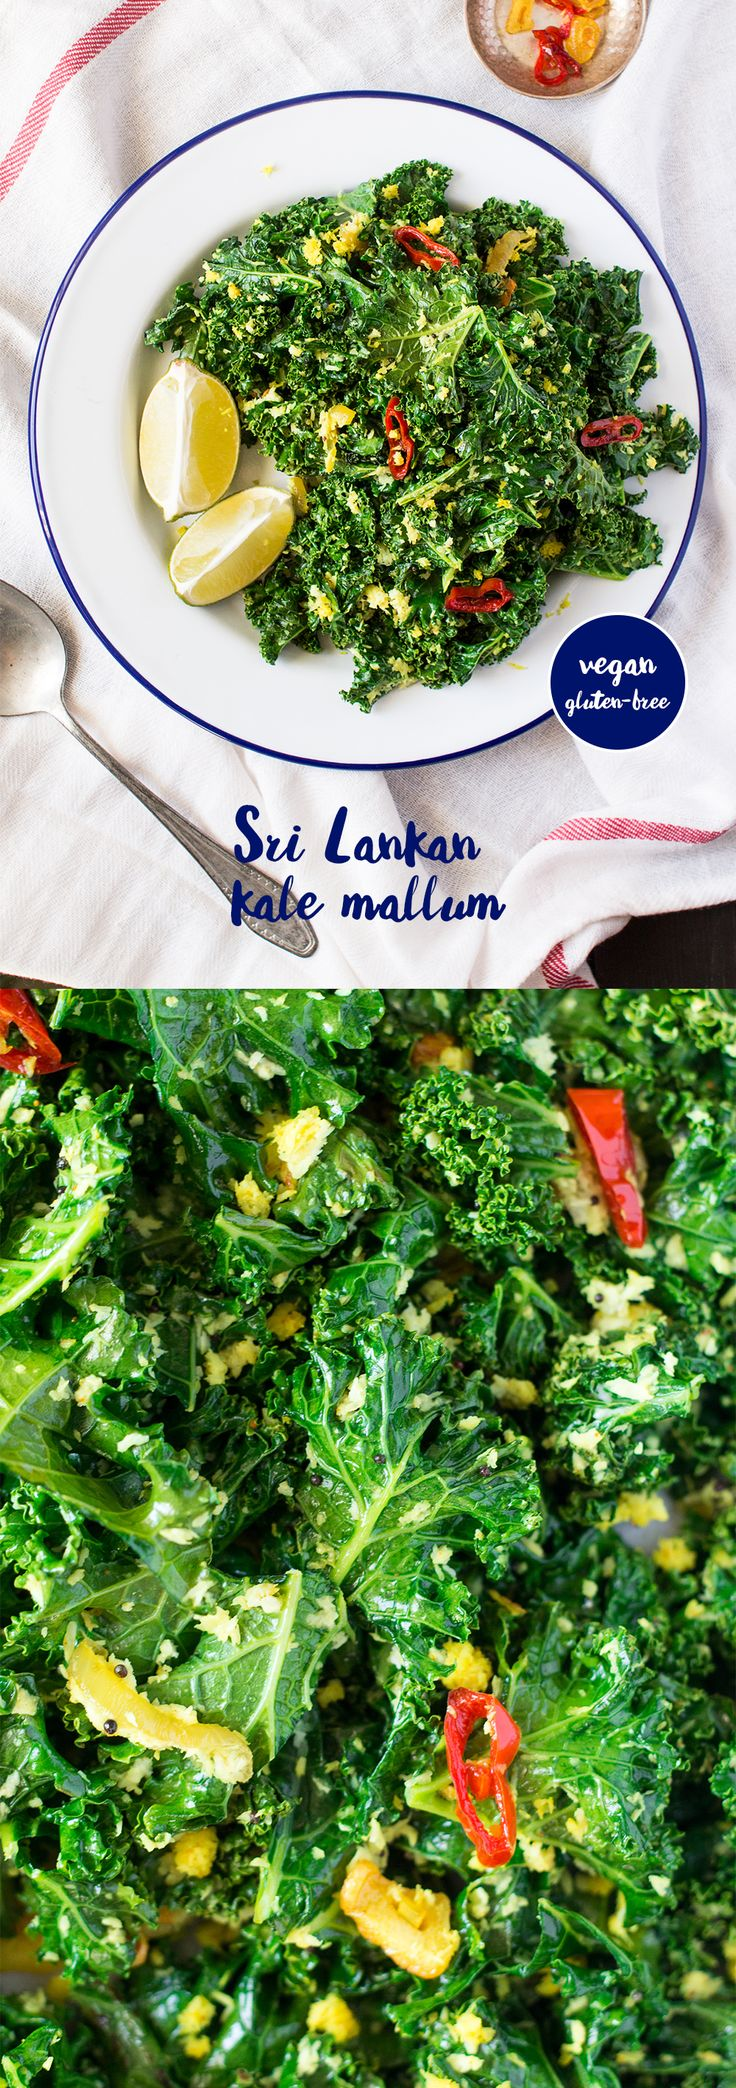 The most #delicious way to #cook #kale that hails from beautiful #srilanka. It's #east, #quick and naturally #vegan and #glutenfree. #recipe #recipes #vegetarian #starter #appetizer #greens #coconut #chilli #chile